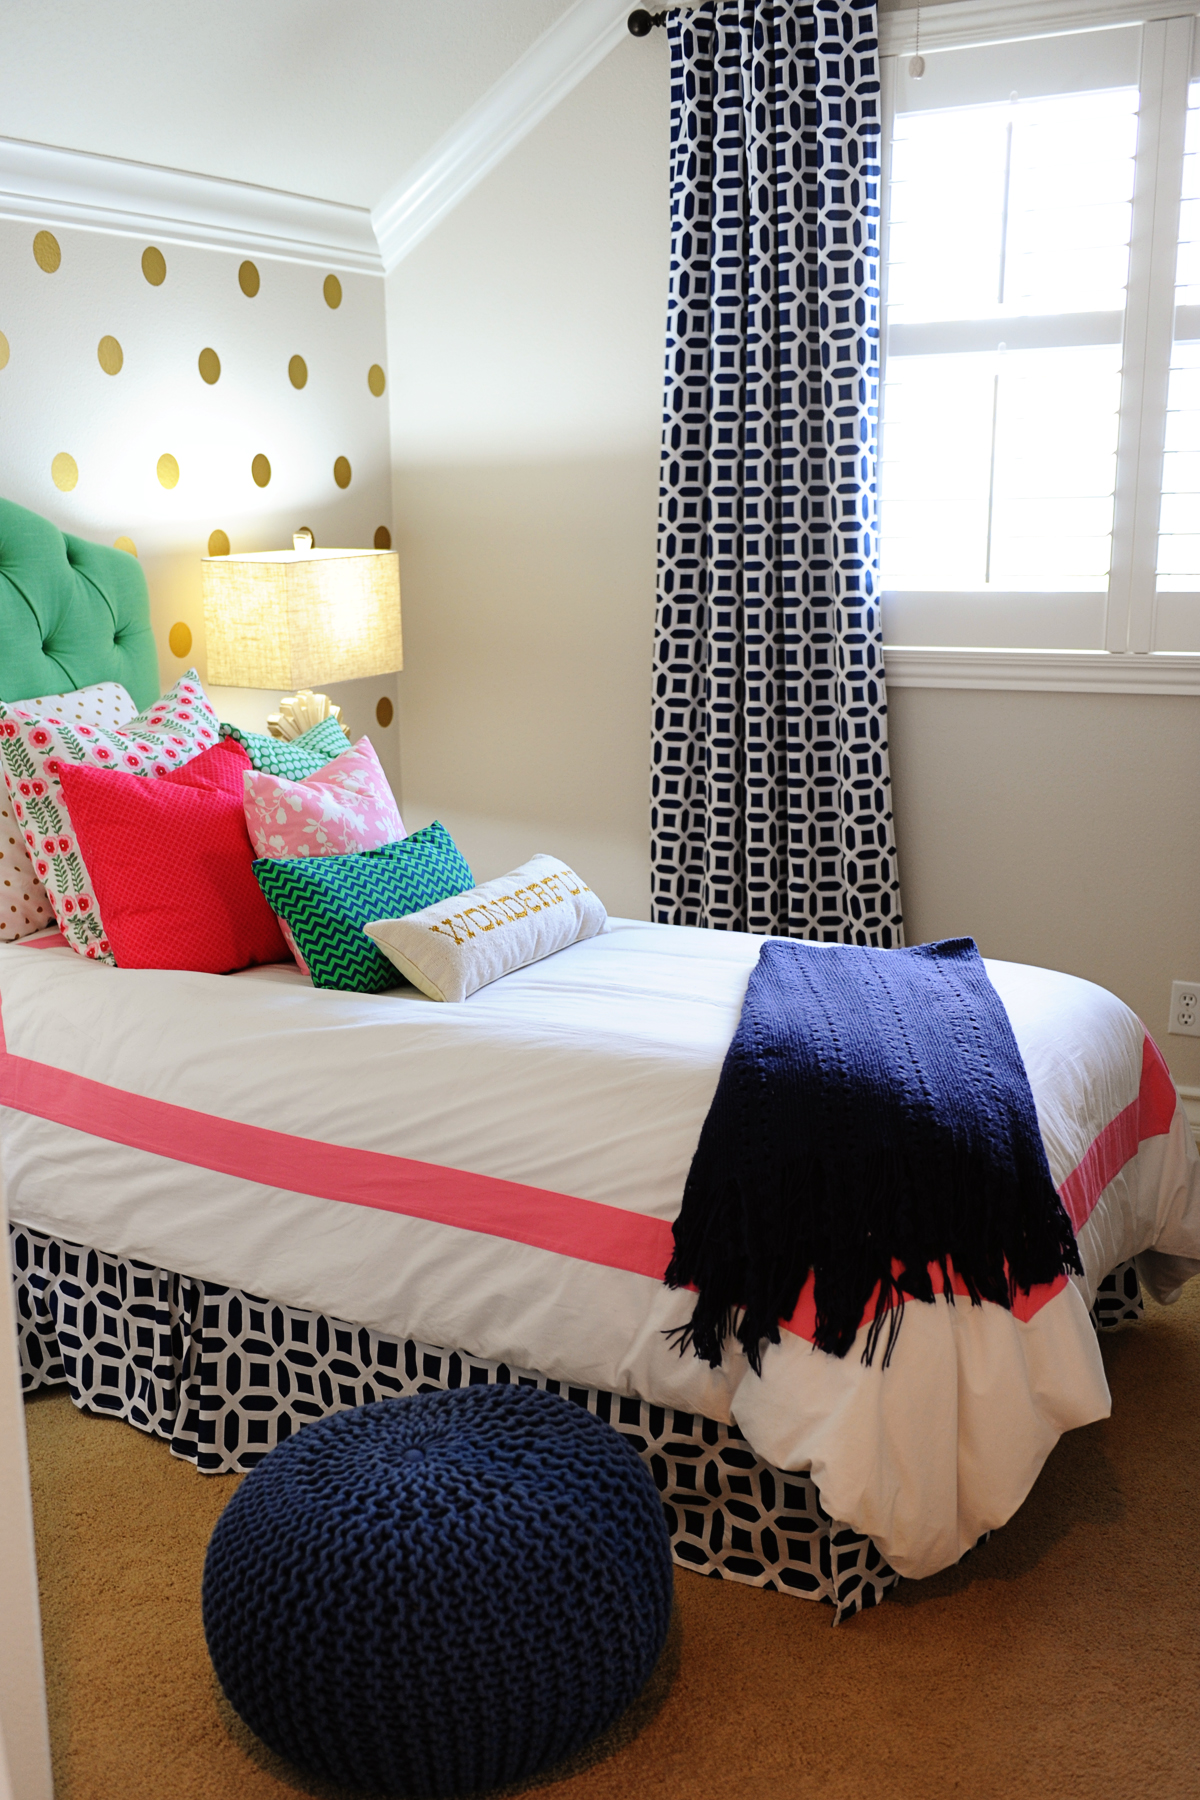 Tween girl bedroom preppy design decor ideas pink navy - Cute bedroom ideas for tweens ...